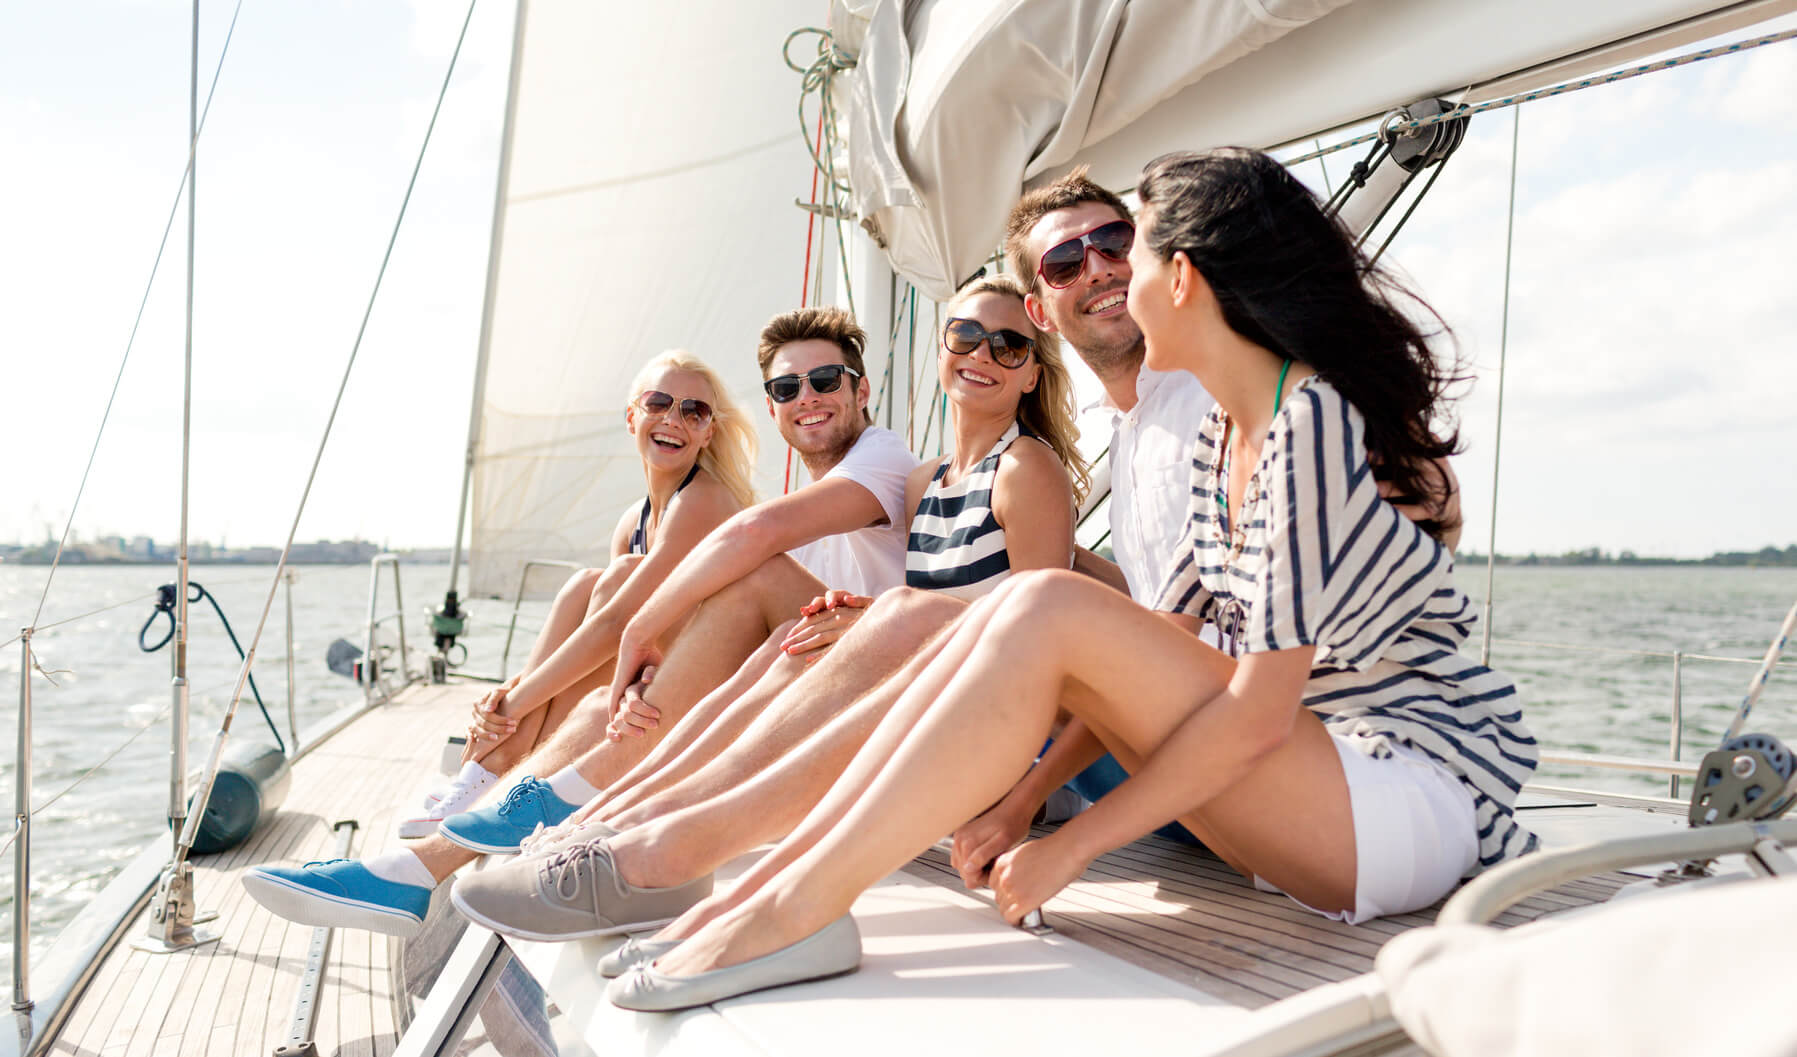 Rent a bareboat for your vacation